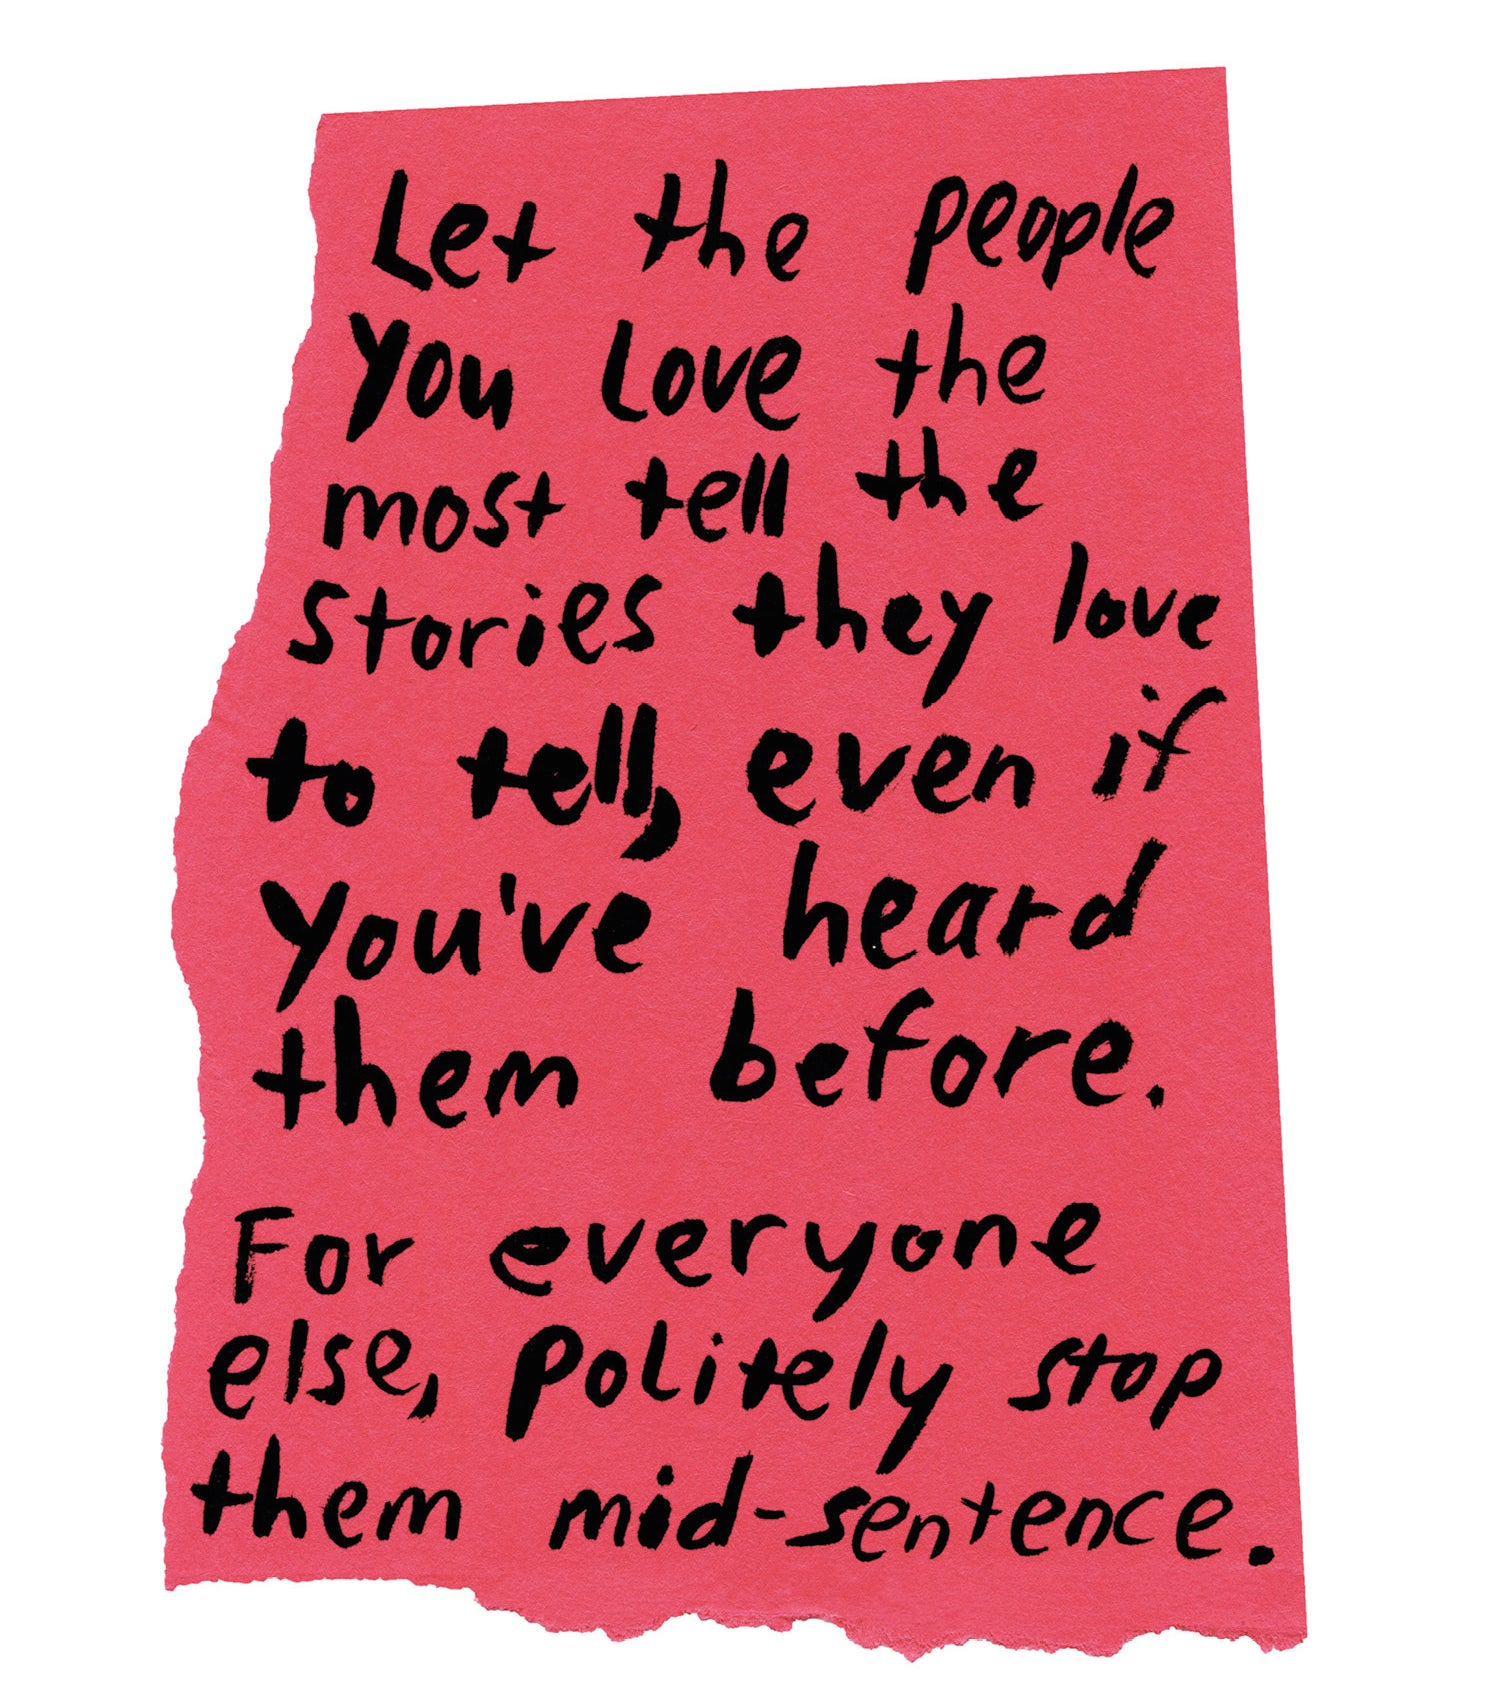 """Handwritten text on torn piece of colored paper: """"Let the people you love the most tell the stories they love to tell, even if you've heard them before. For everyone else, politely stop them mid-sentence."""""""